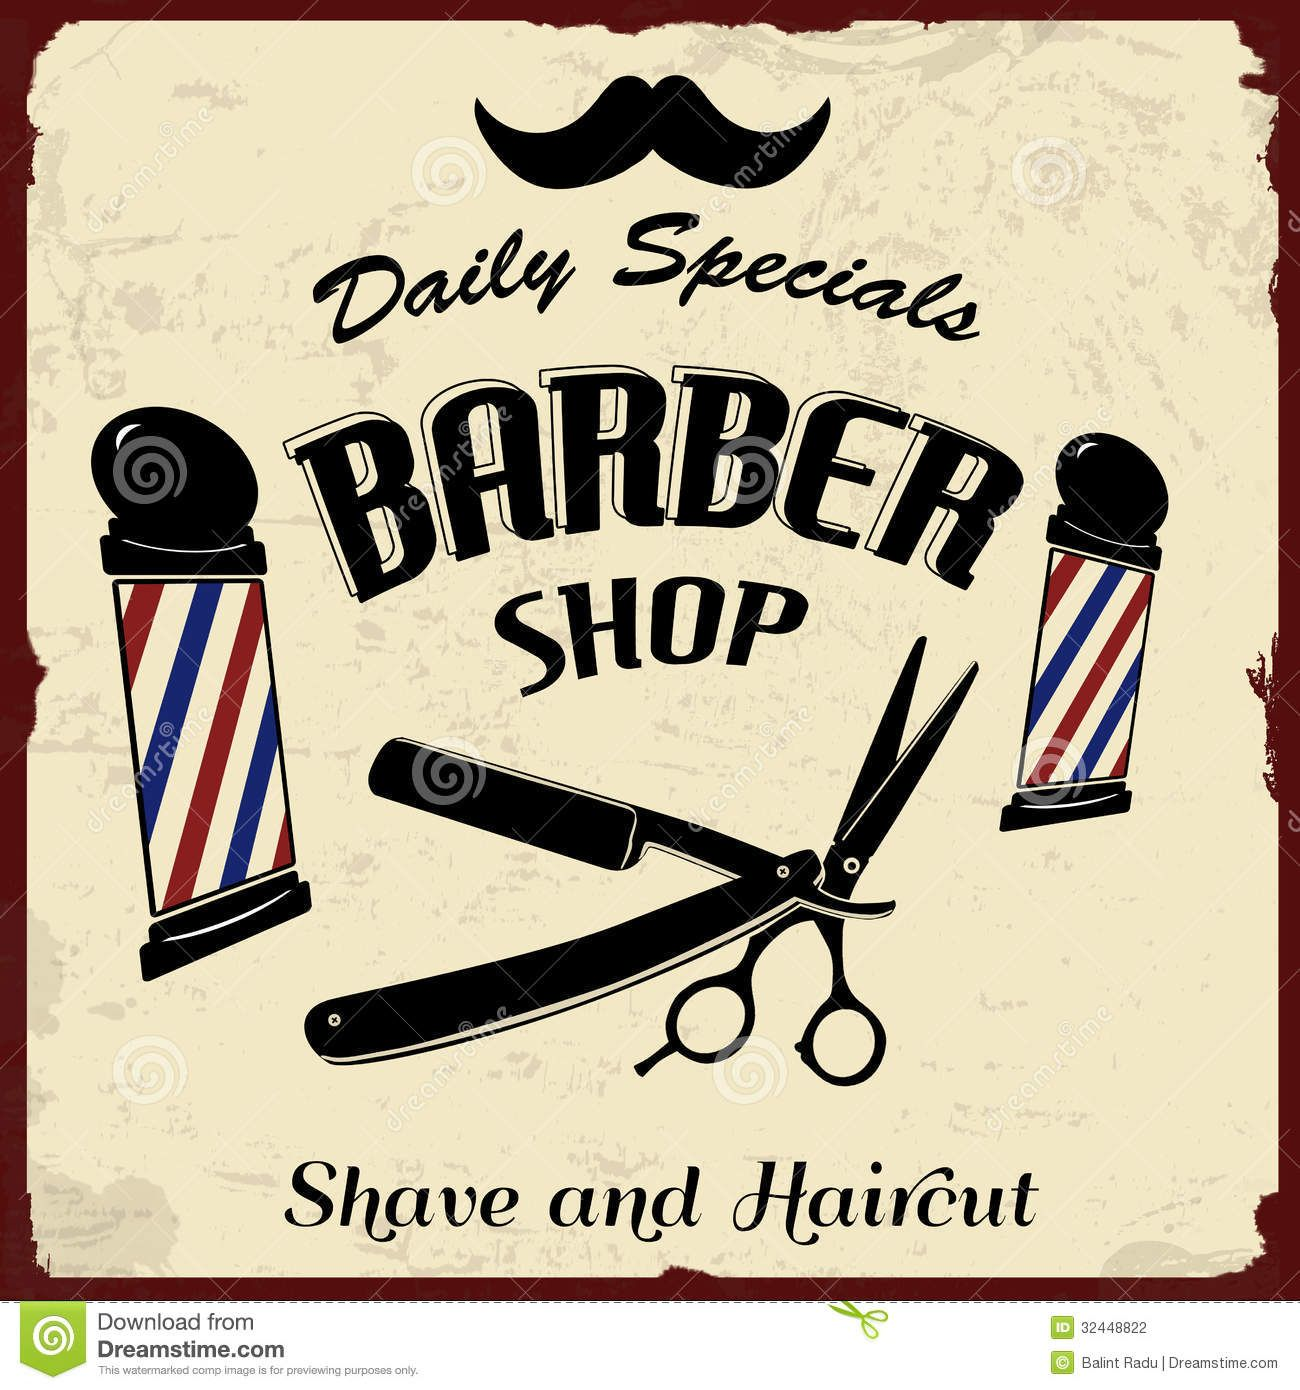 Antique barber shop sign - Vintage Styled Barber Shop Stock Photography Image 32448822